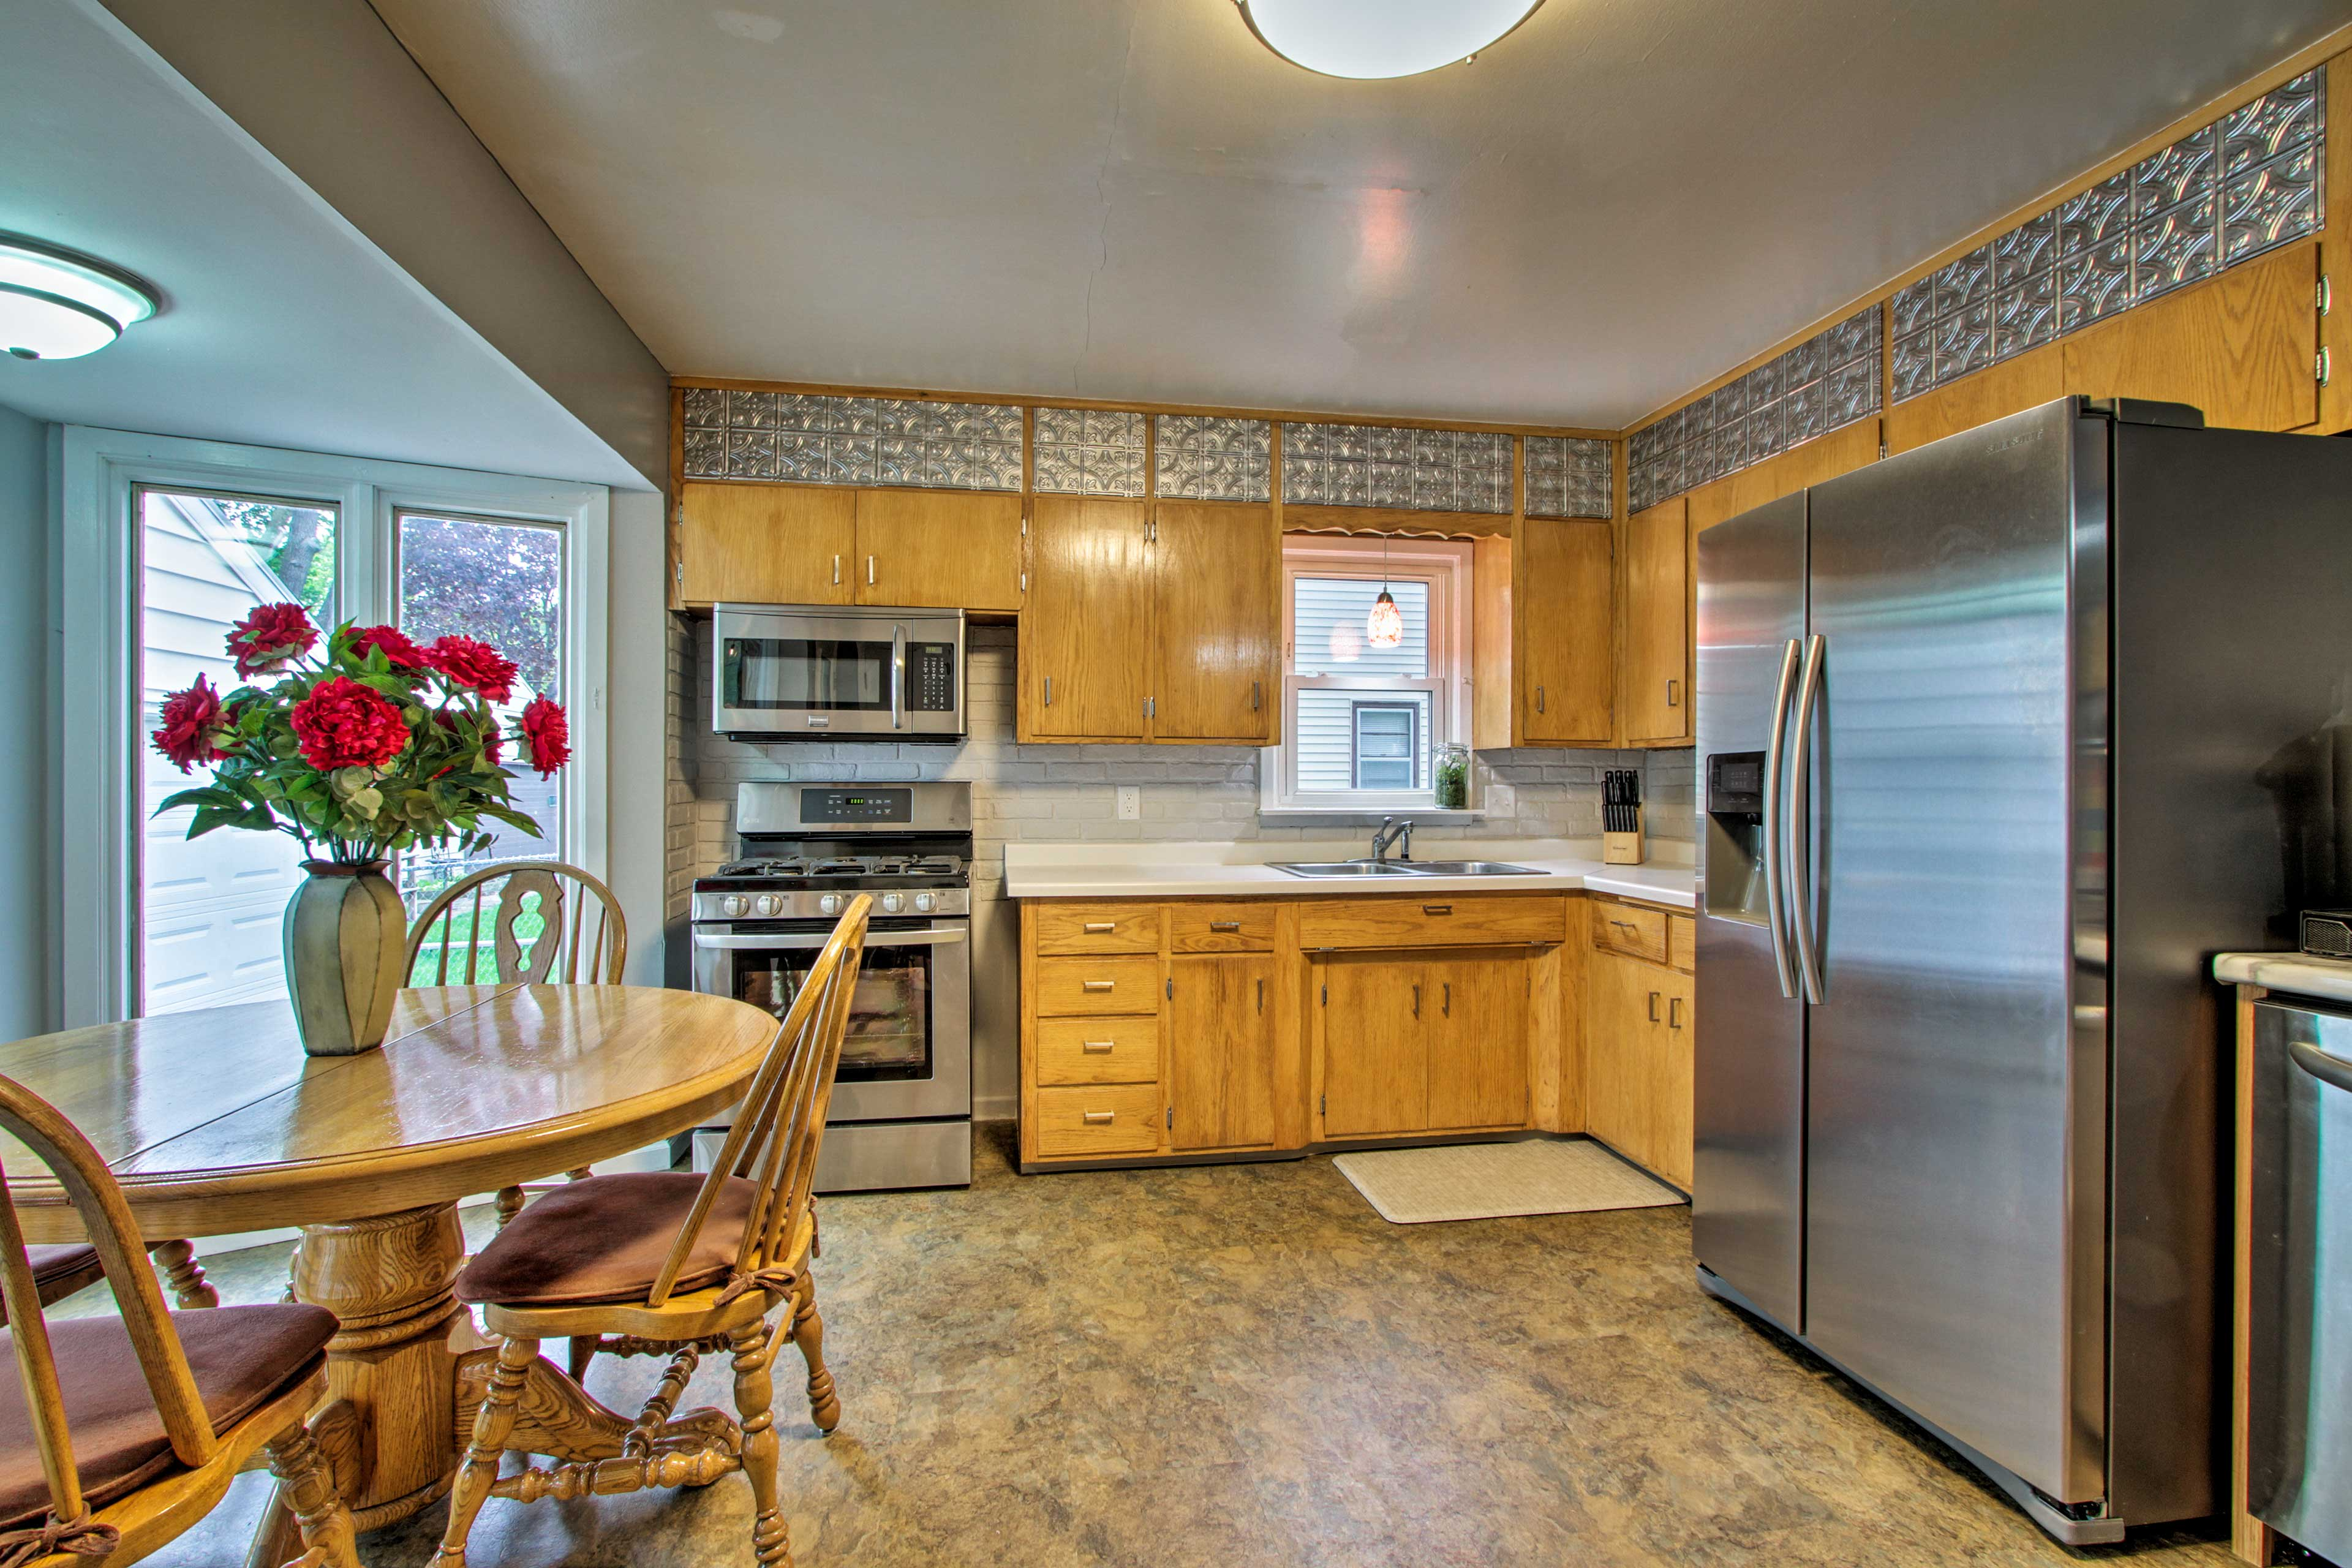 The fully equipped kitchen offers all the essentials.